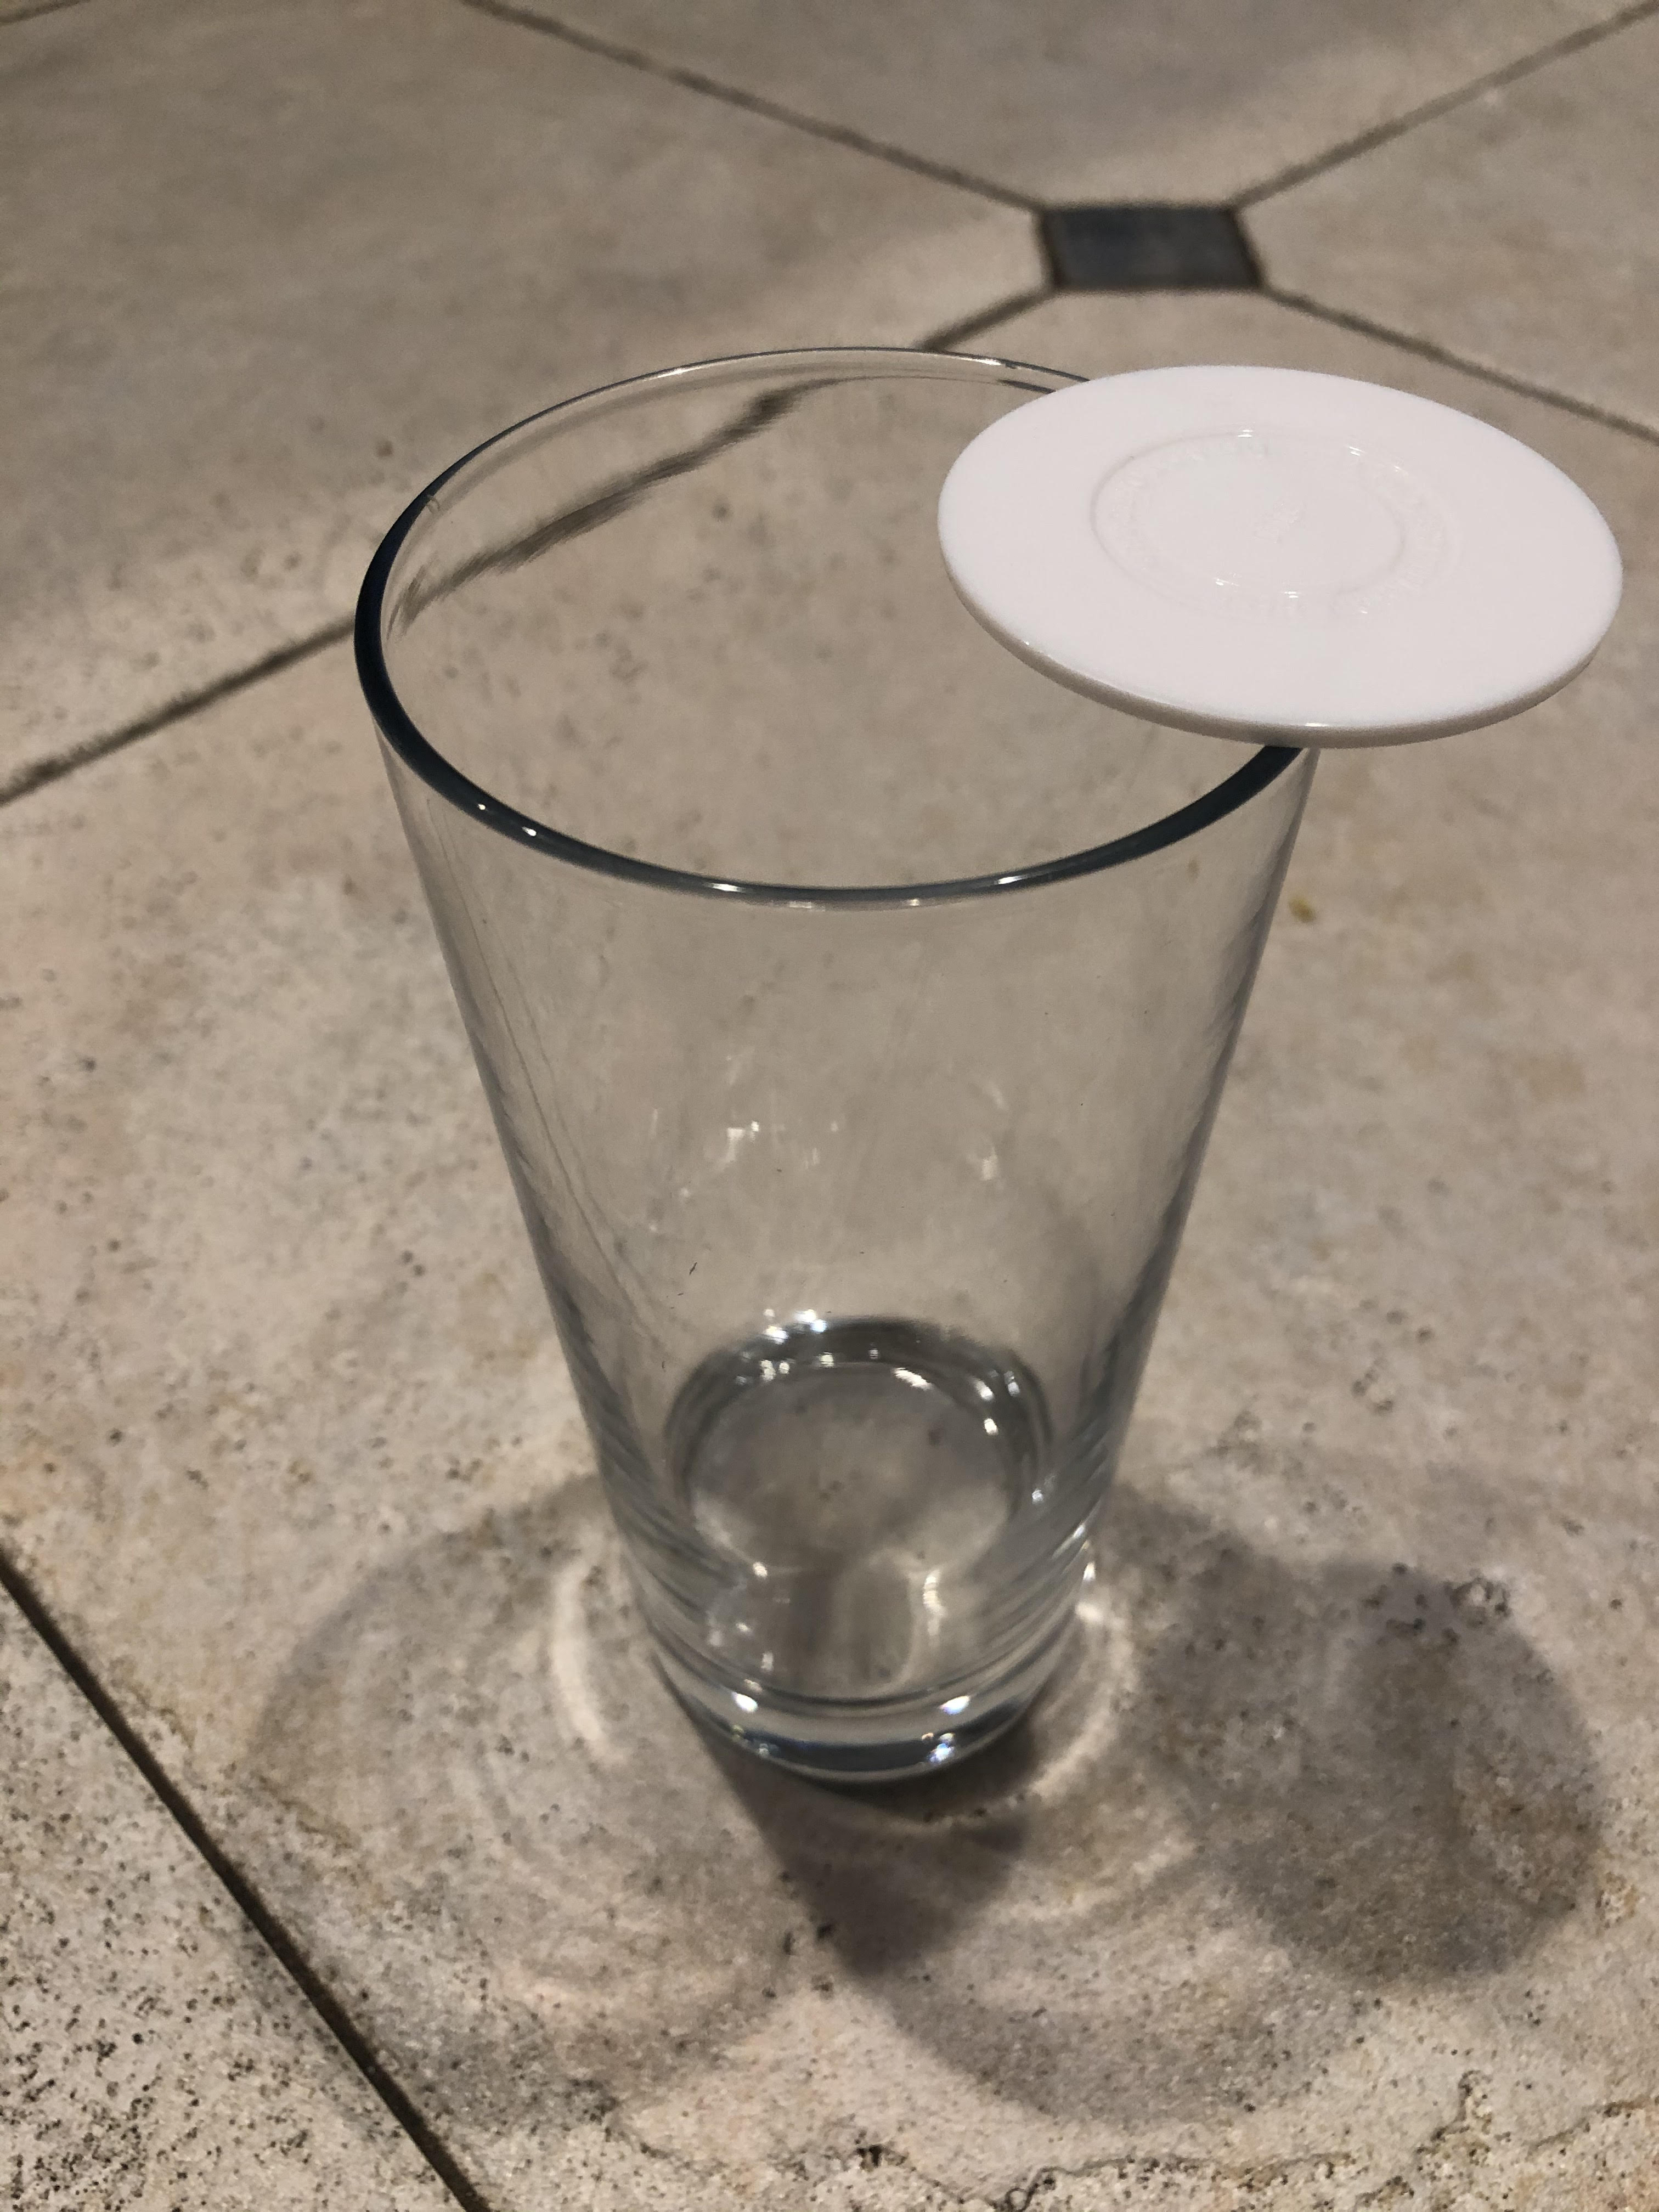 glass cup with a white disk balancing on its edge